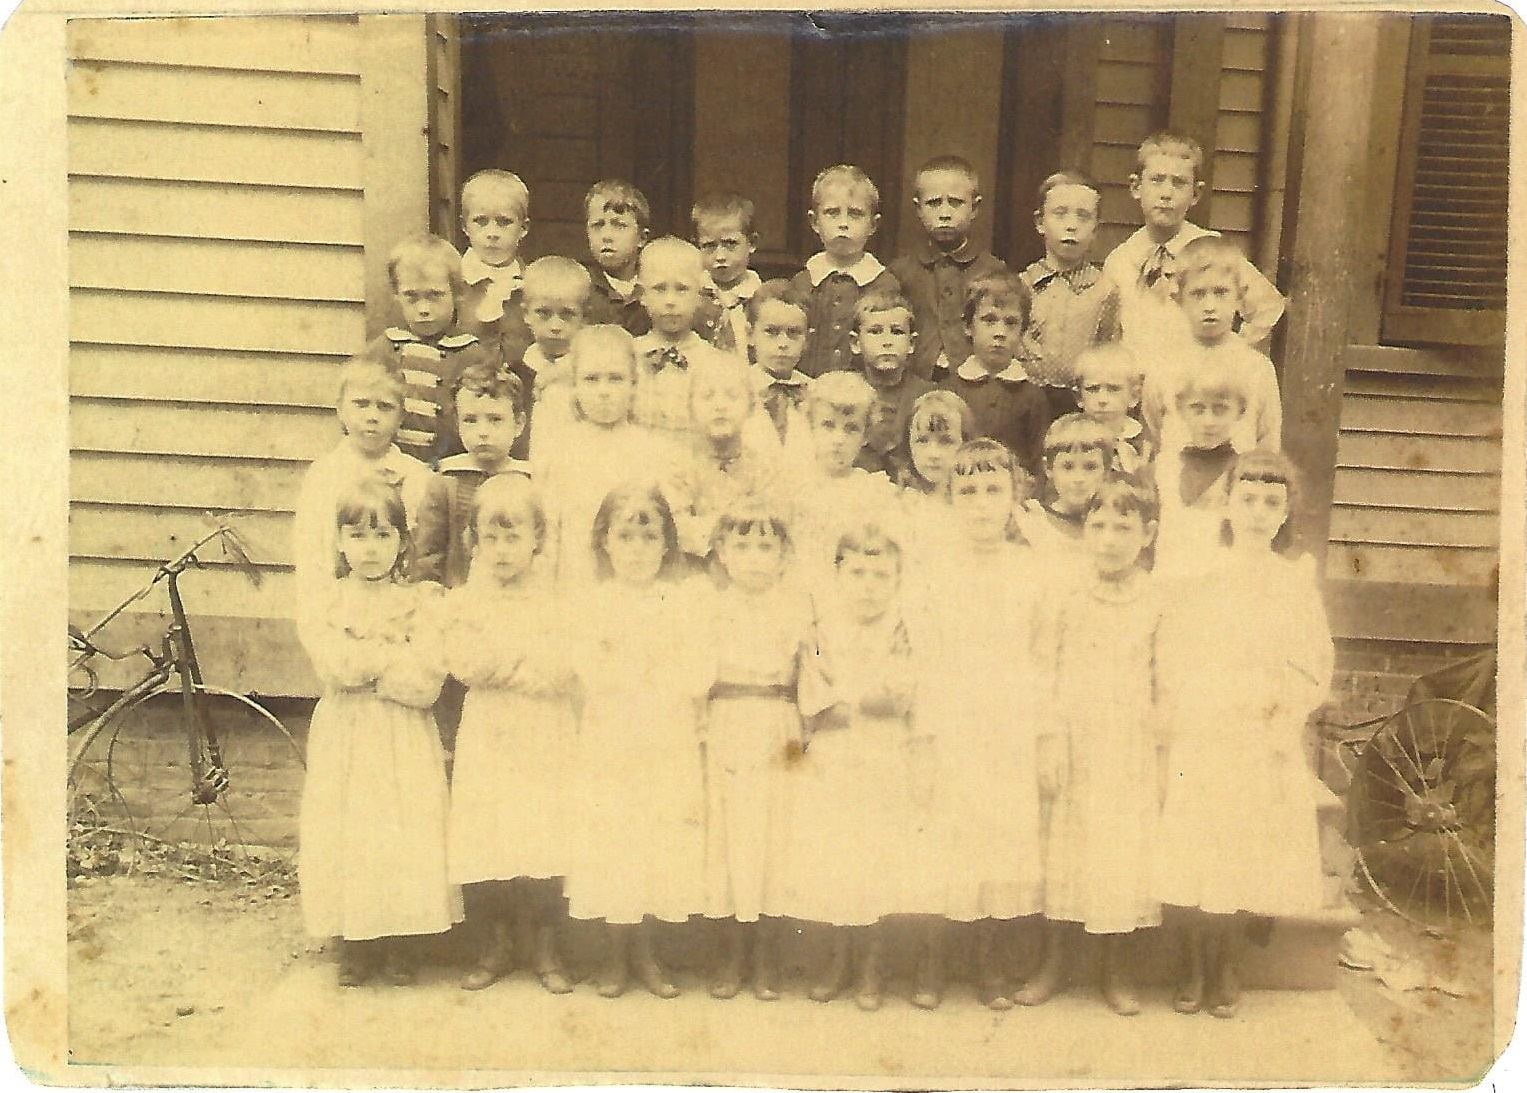 First Public School in Leonia - The first public school opened in 1856 with one room, one teacher, and 66 pupils. It was located on Grand Avenue, and the earliest photograph of the school is from 1880.Children pose in front of the Grand Avenue School circa 1893